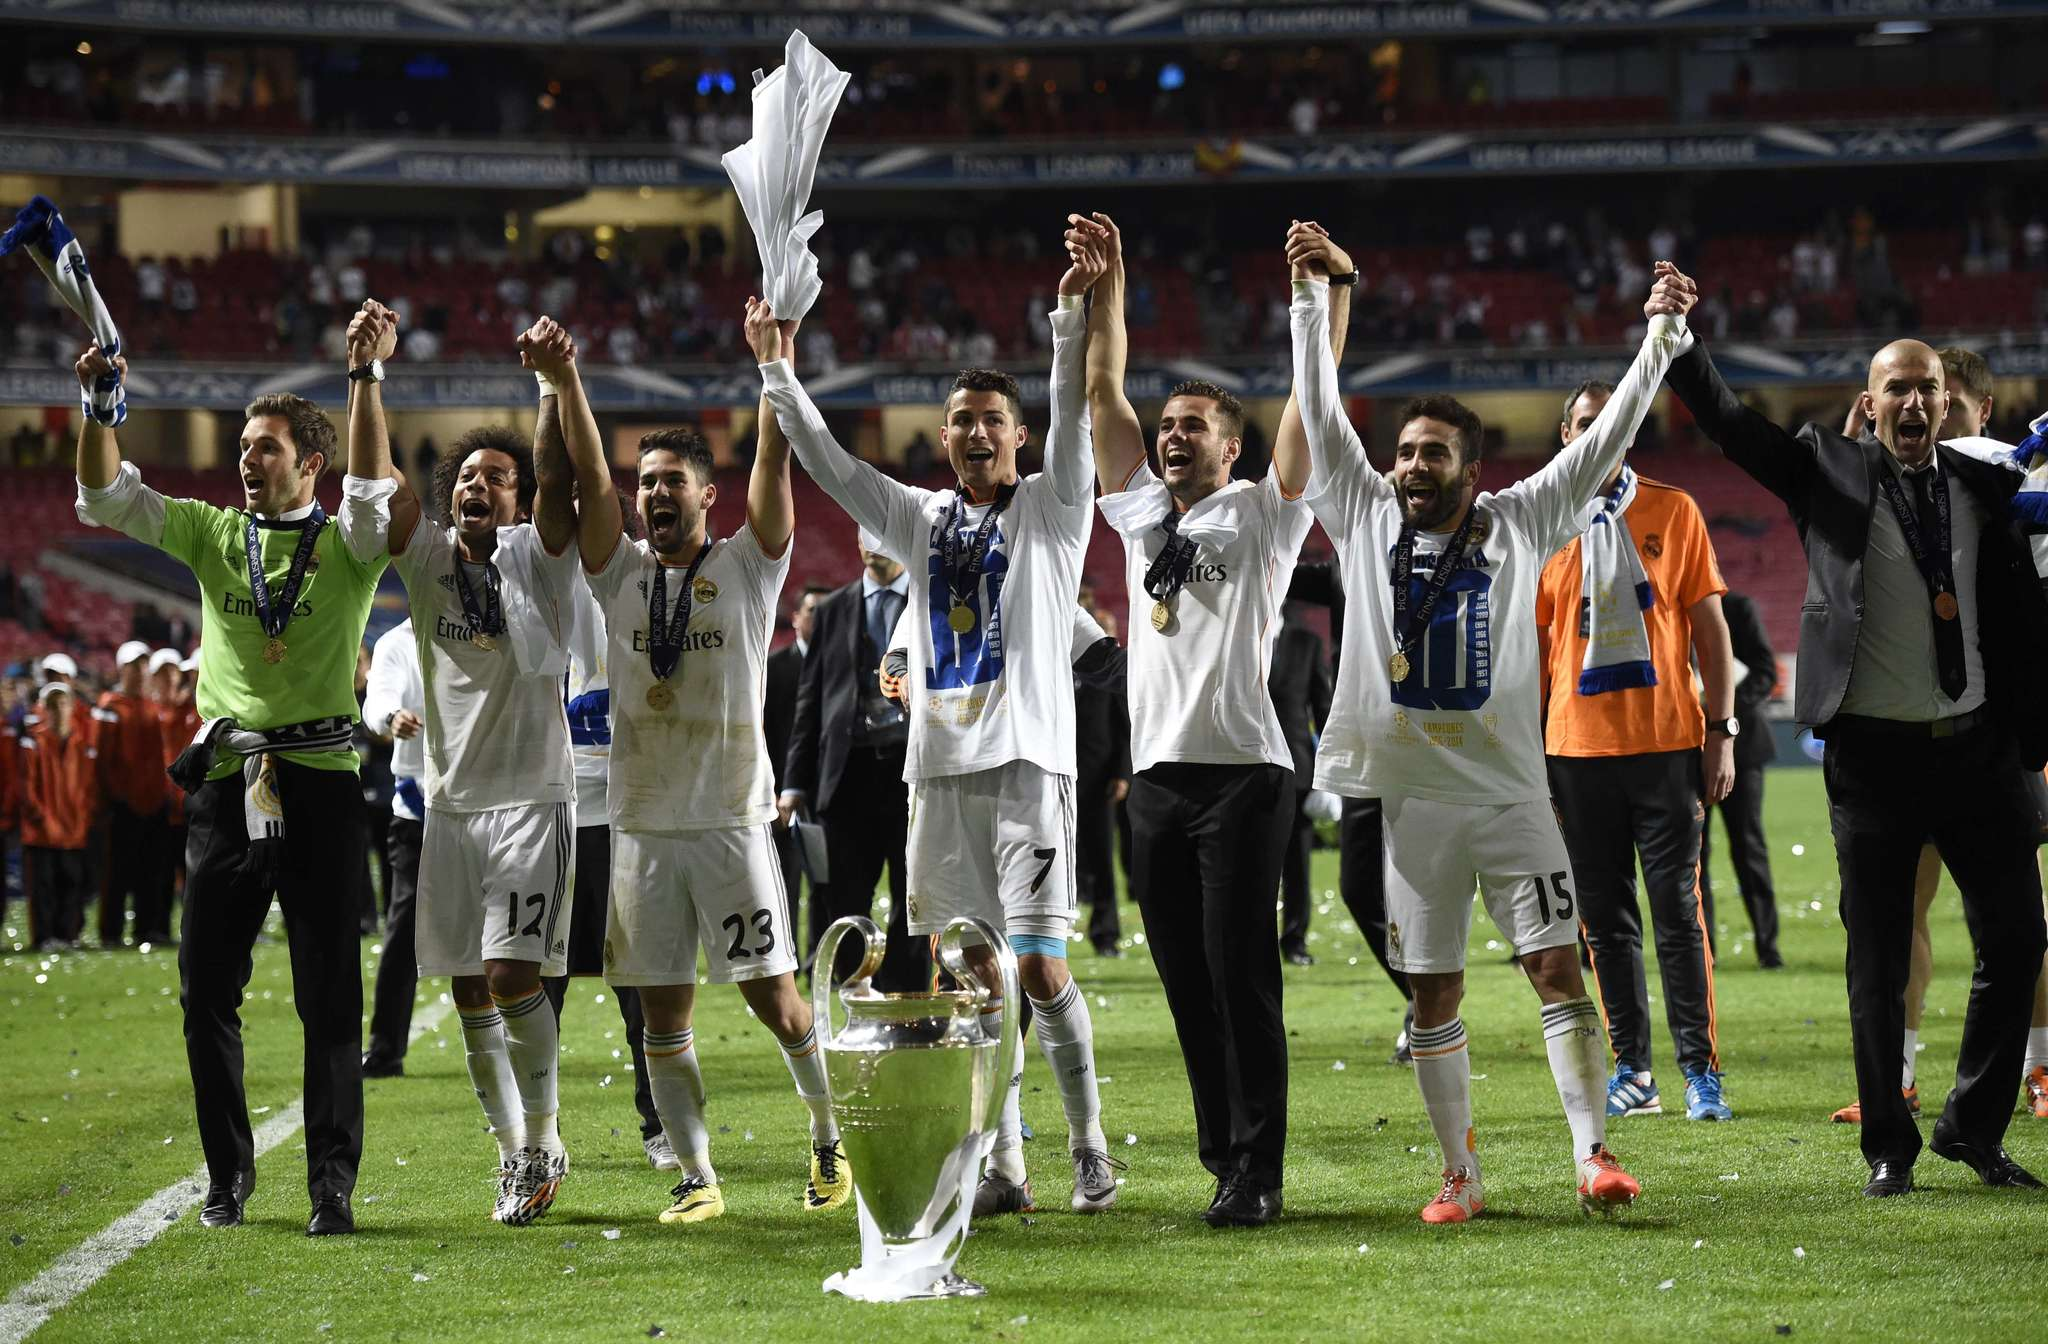 Real Madrids Brazilian defender Marcelo (2ndL), Real Madrids midfielder Isco (3rdL), Real Madrids Portuguese forward Cristiano Ronaldo (C), Real Madrids defender Daniel <HIT>Carvajal</HIT> (2ndR) and Real Madrids assistant manager Zinedine Zidane celebrate their victory at the end of the UEFA <HIT>Champions</HIT> League Final Real Madrid vs Atletico de Madrid at Luz stadium in Lisbon, on May 24, <HIT>2014</HIT>. Real Madrid won 4-1. AFP PHOTO/ FRANCK FIFE